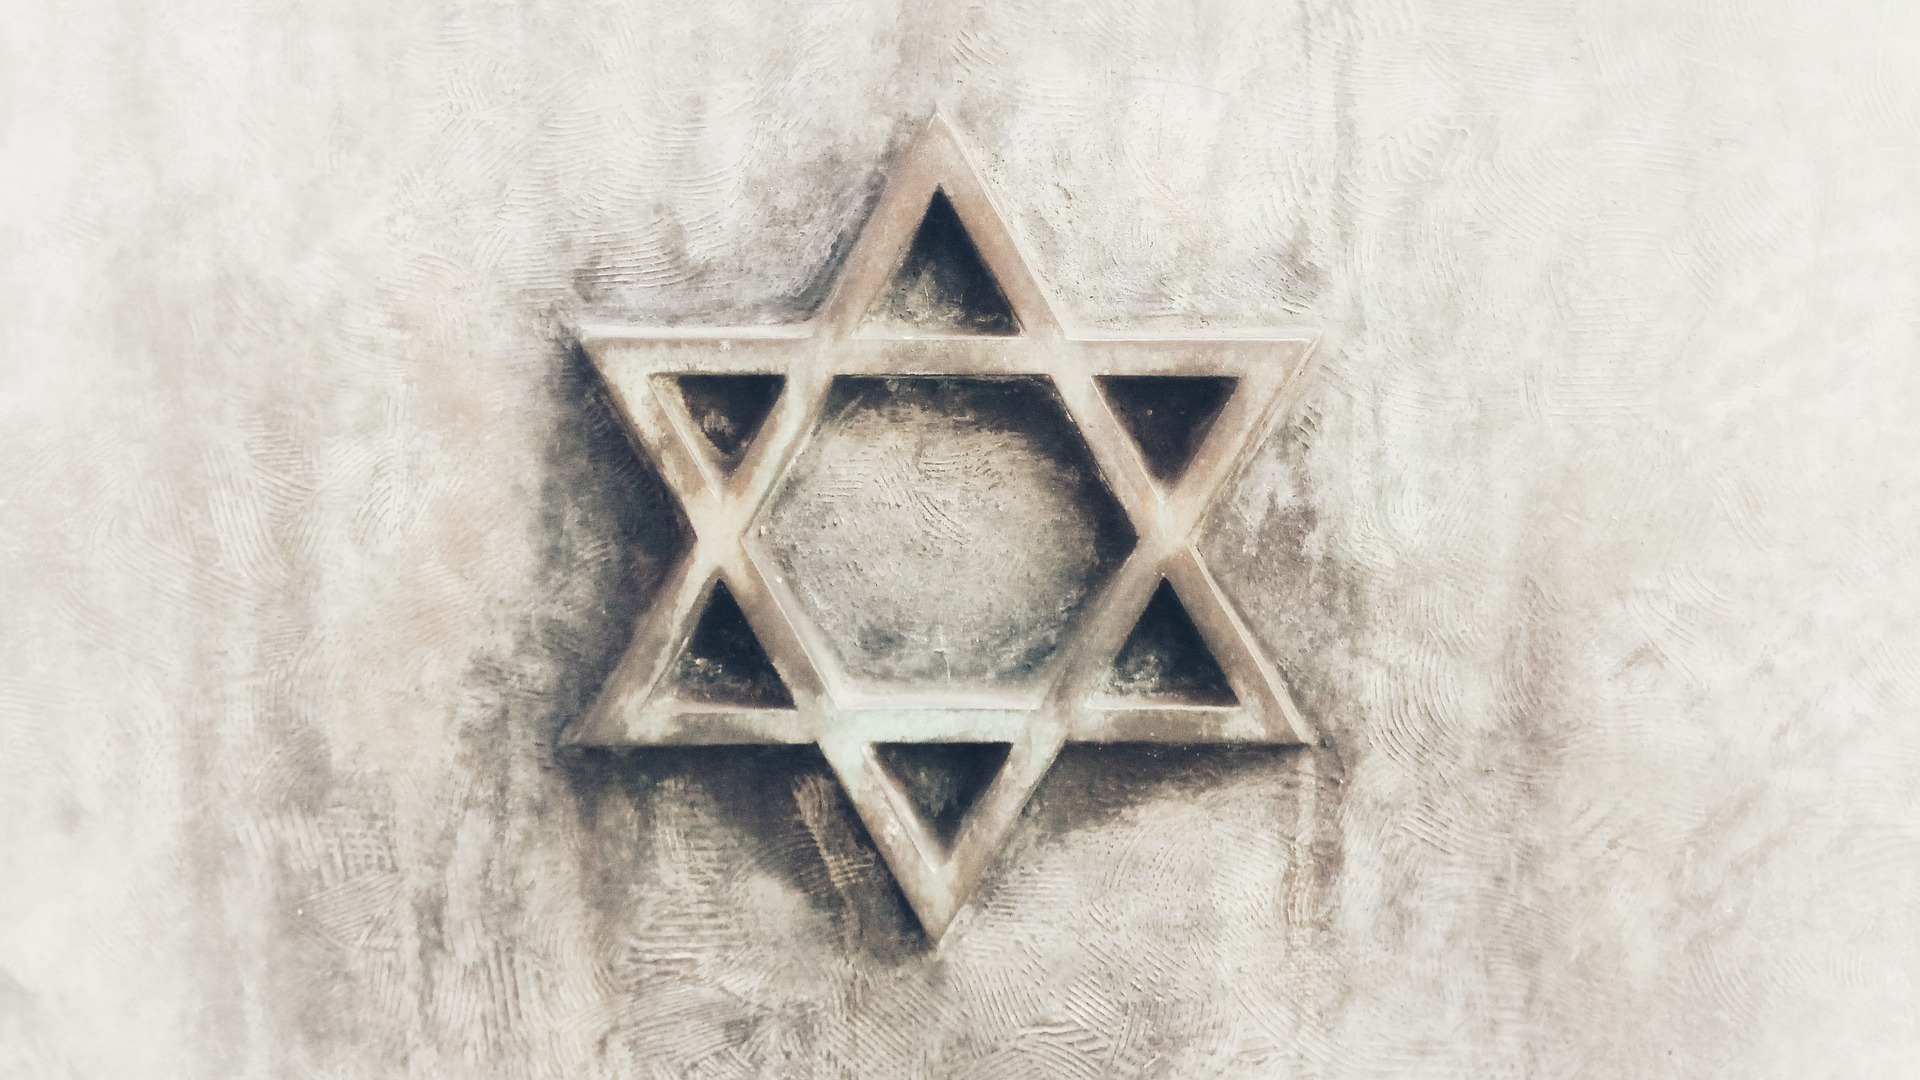 Creative Europe Launches 'Mapping the Jewish cemeteries of Europe' Pilot Project